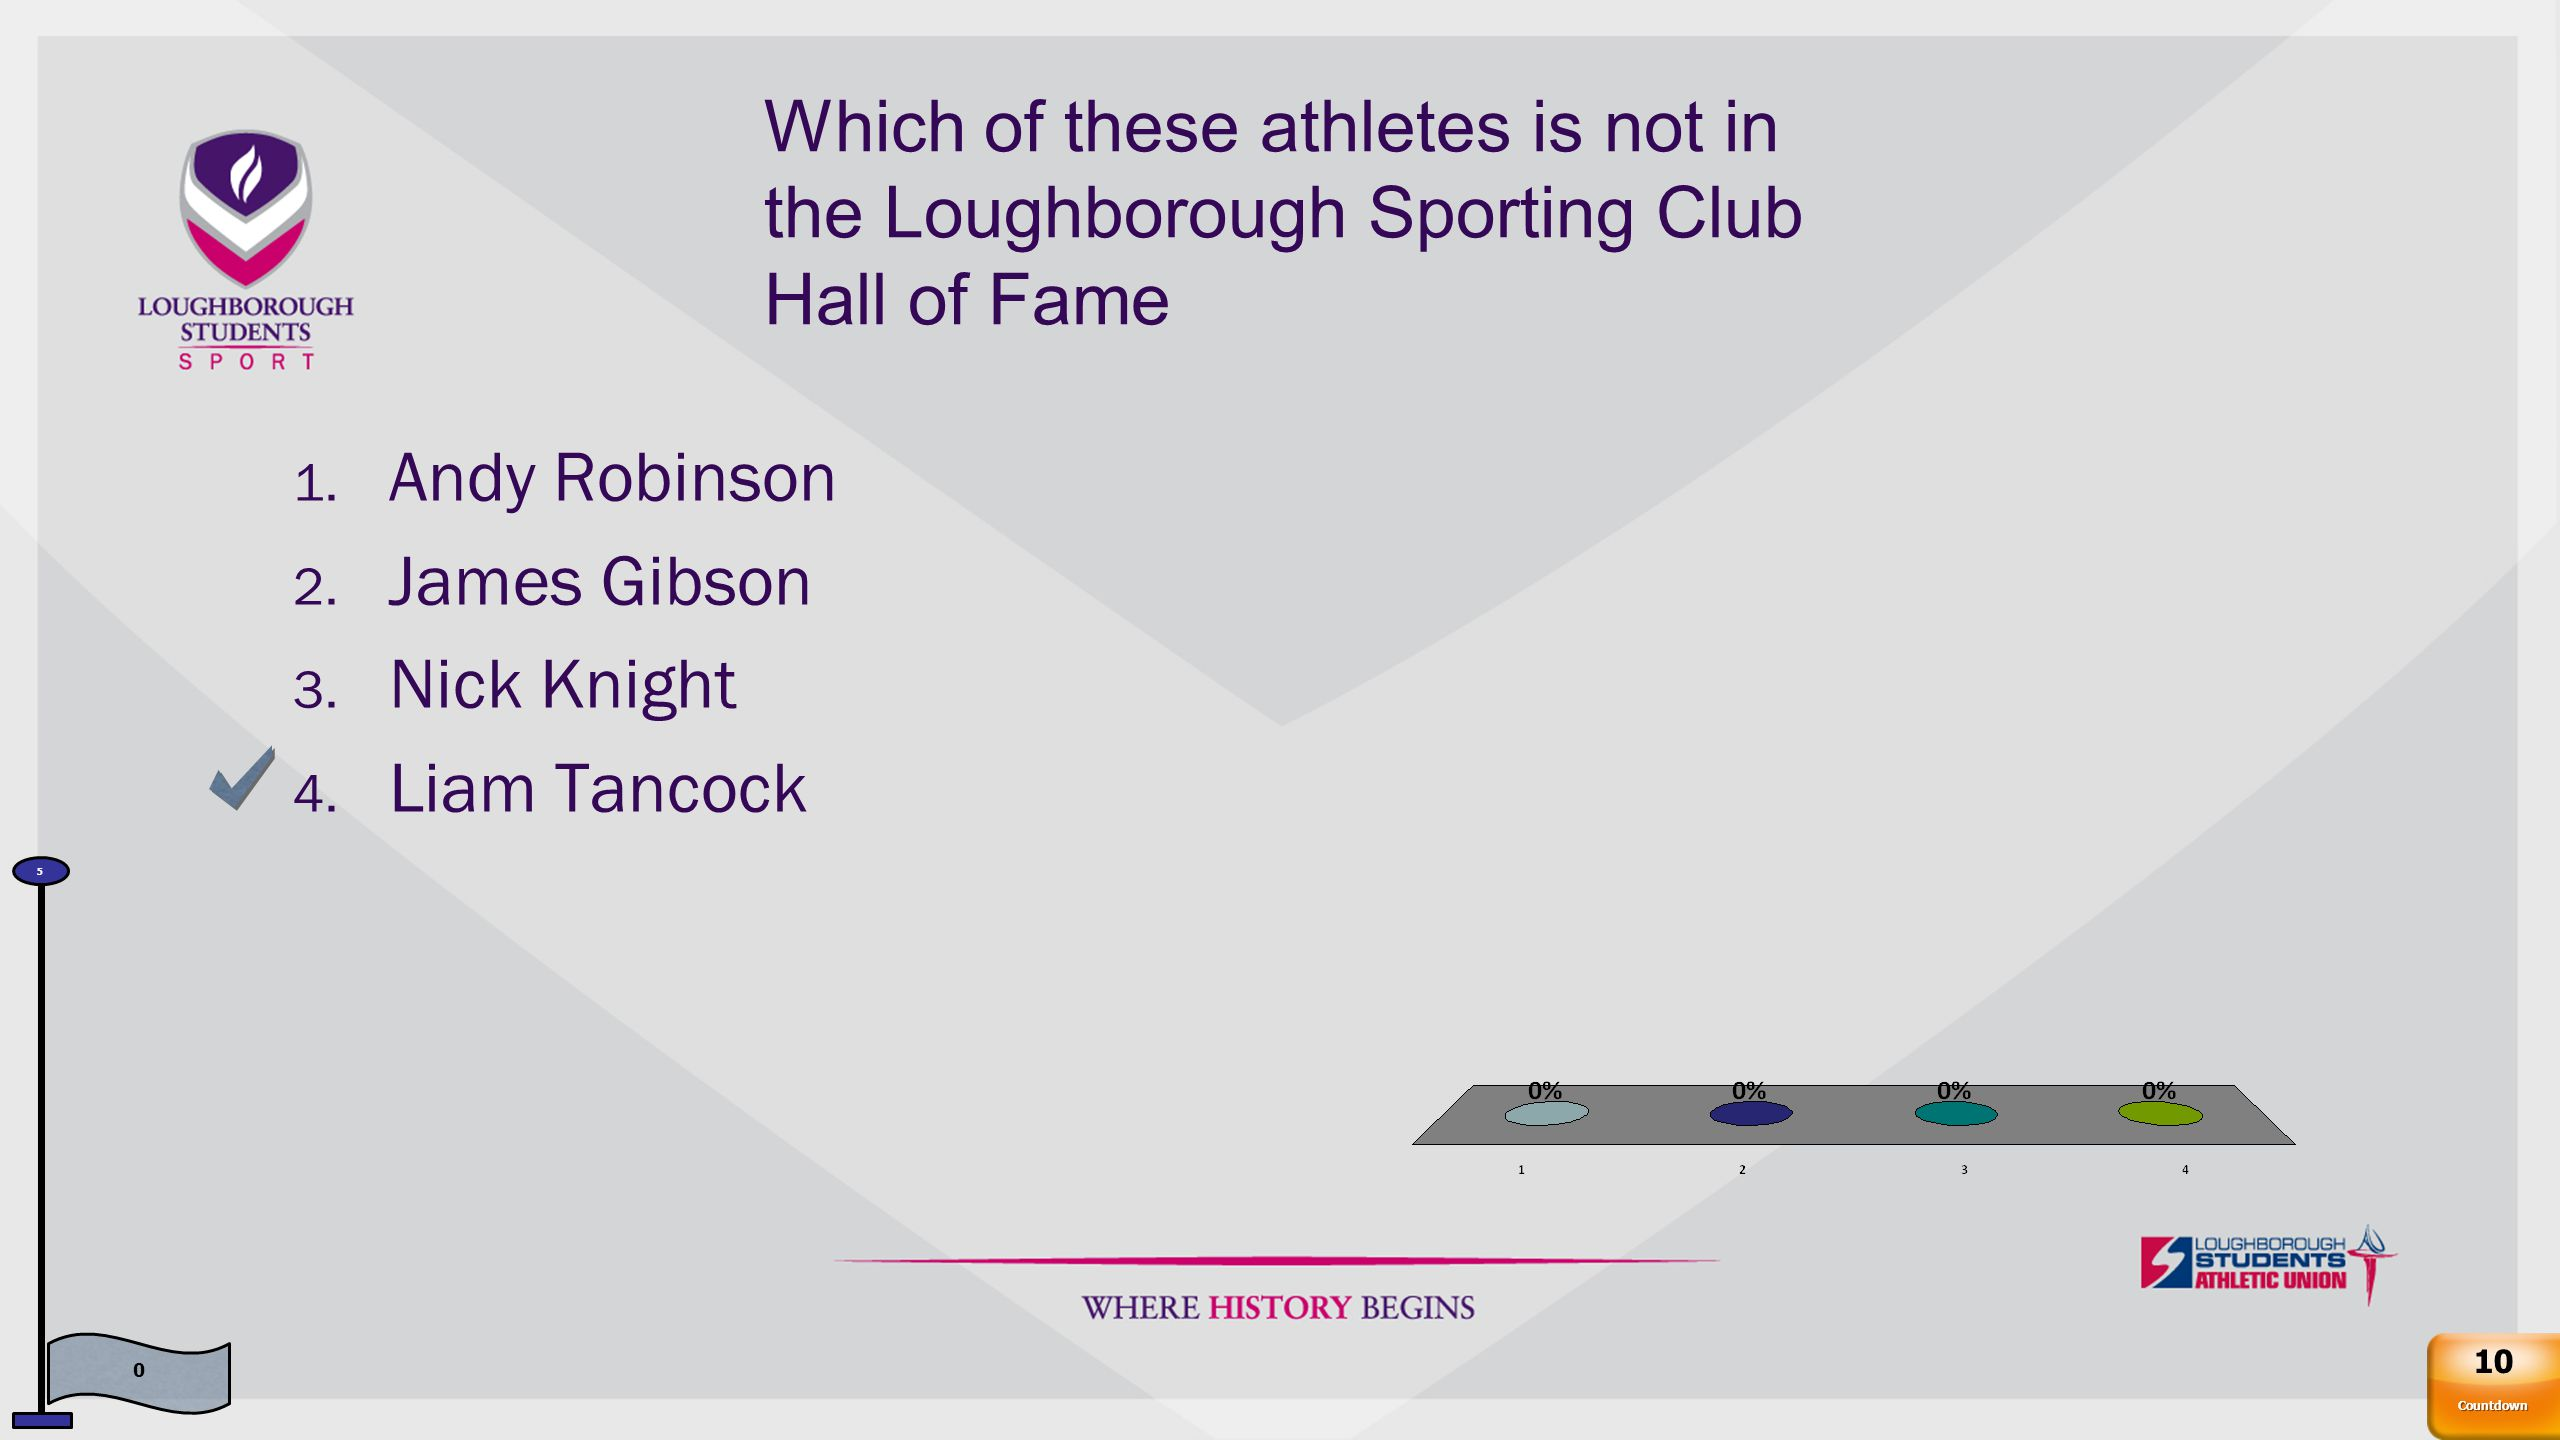 Which of these athletes is not in the Loughborough Sporting Club Hall of Fame 0 5 1.